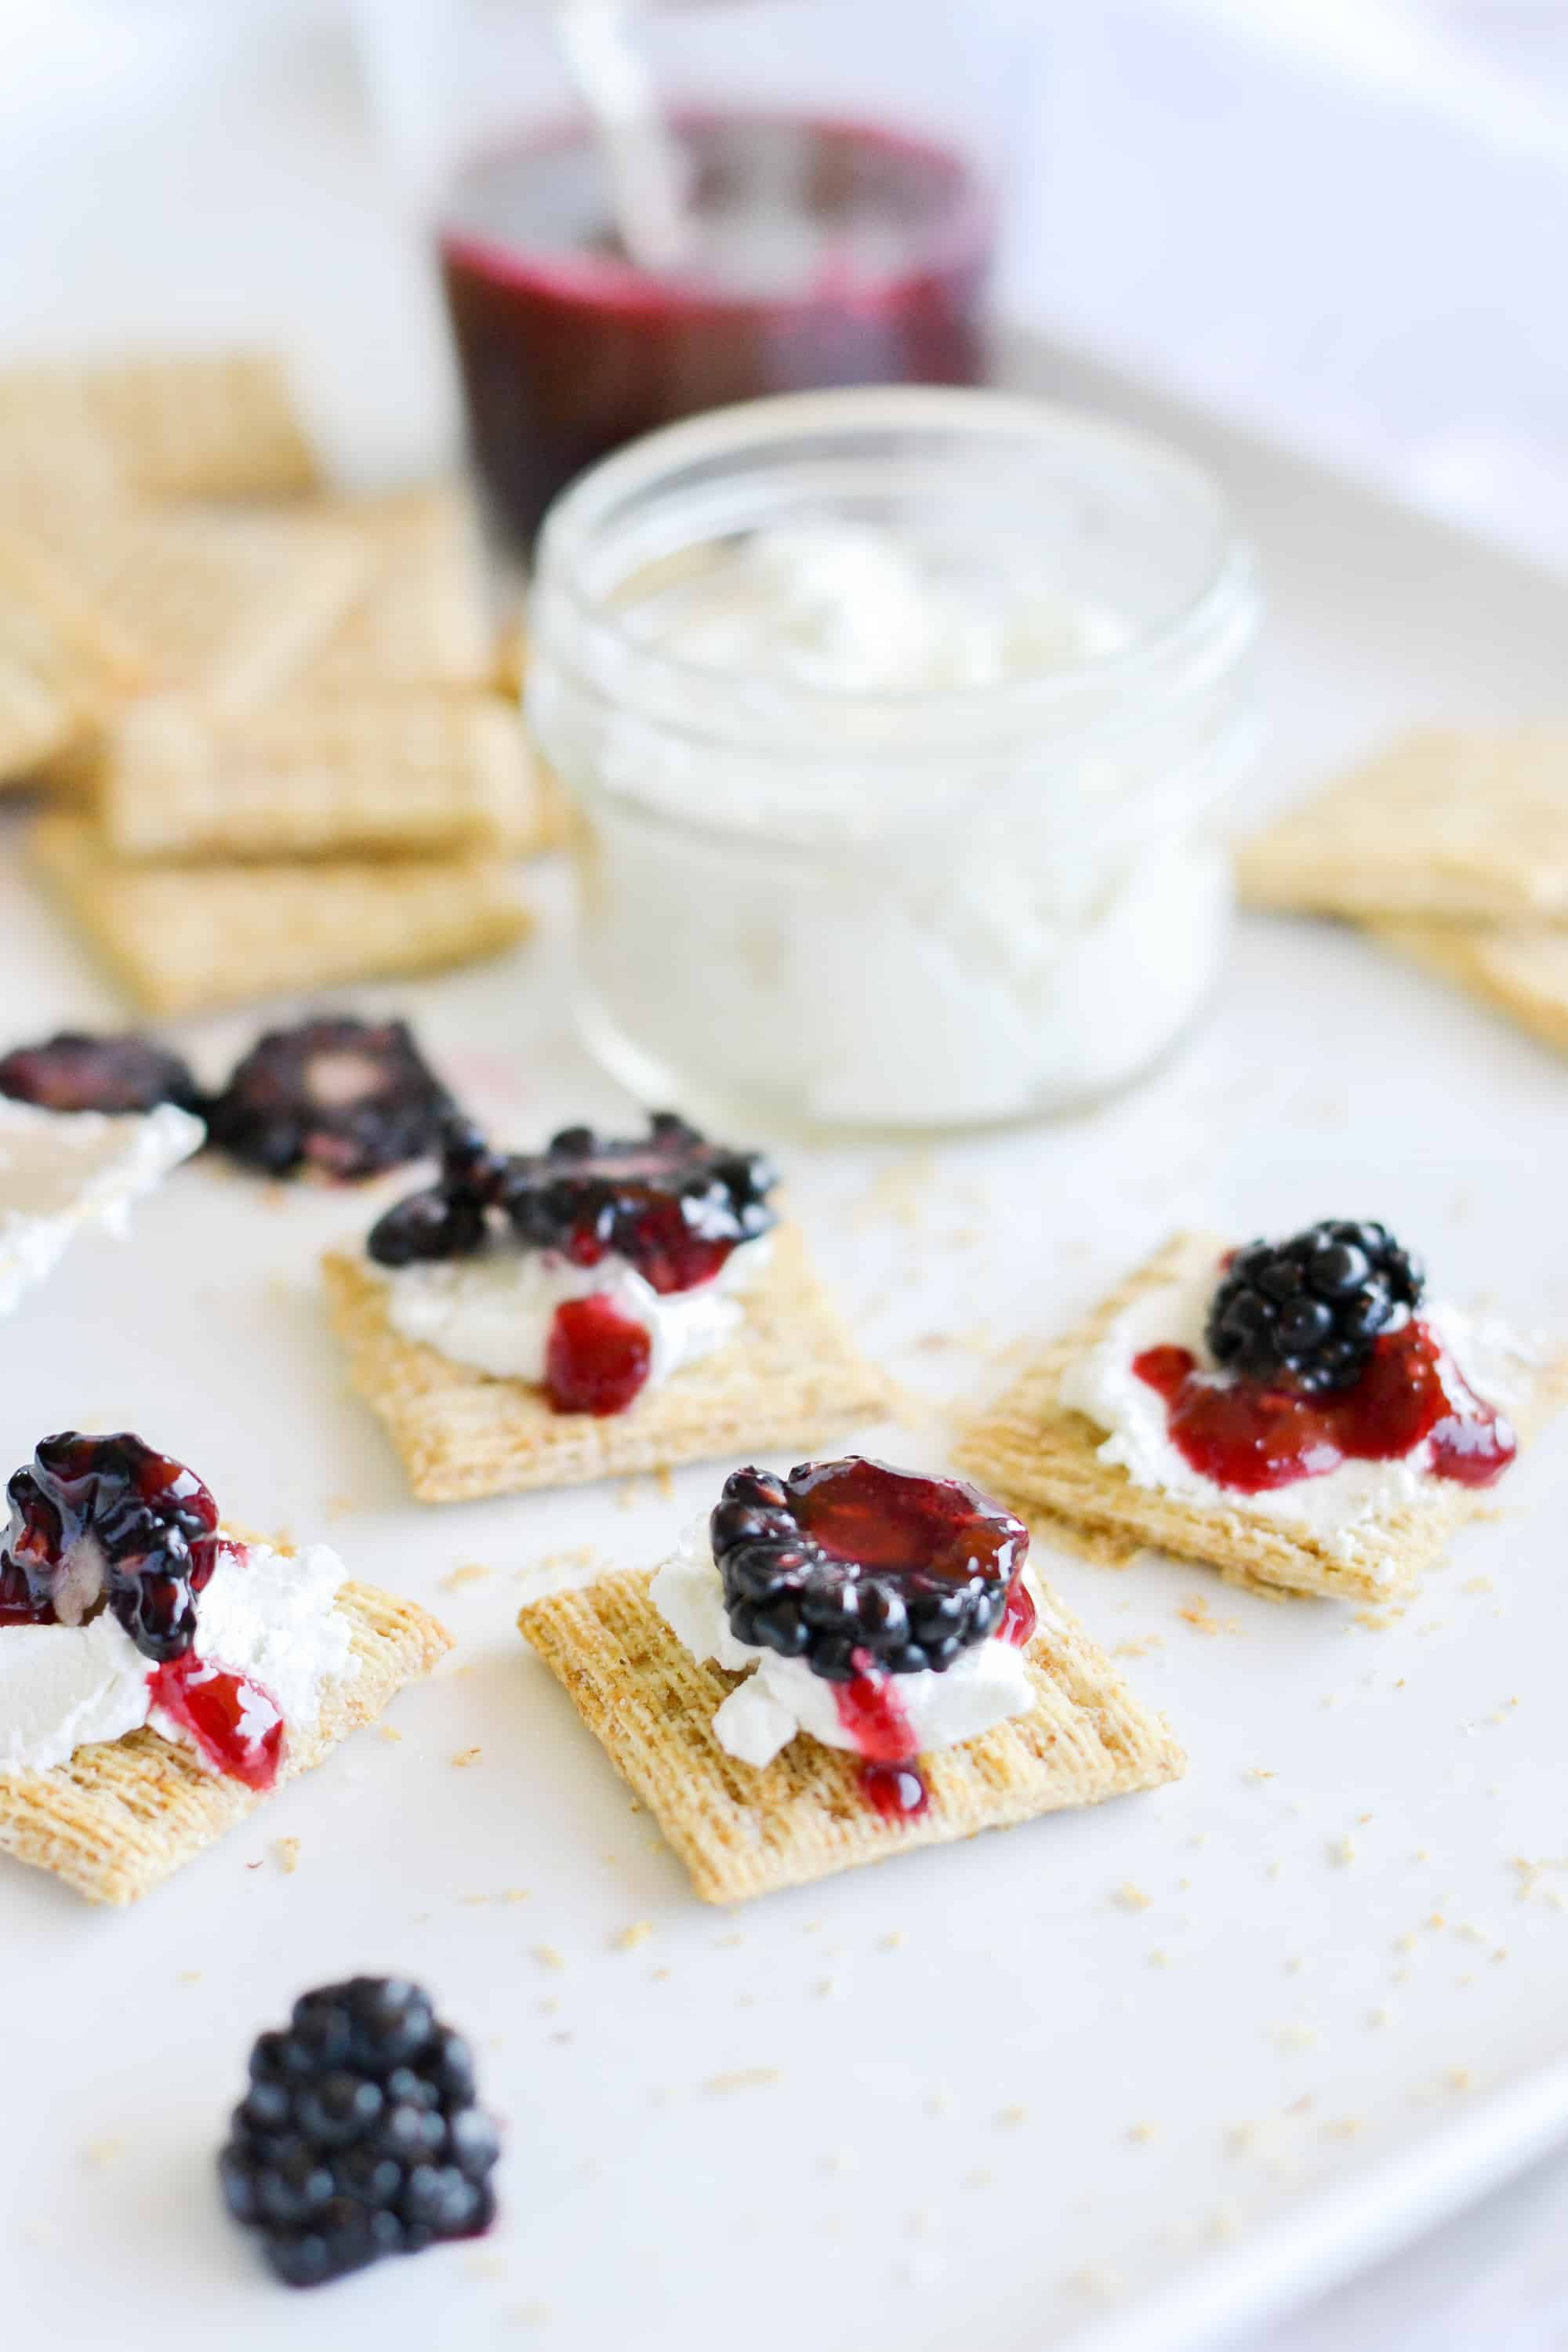 triscuits with blackberries and goat cheese